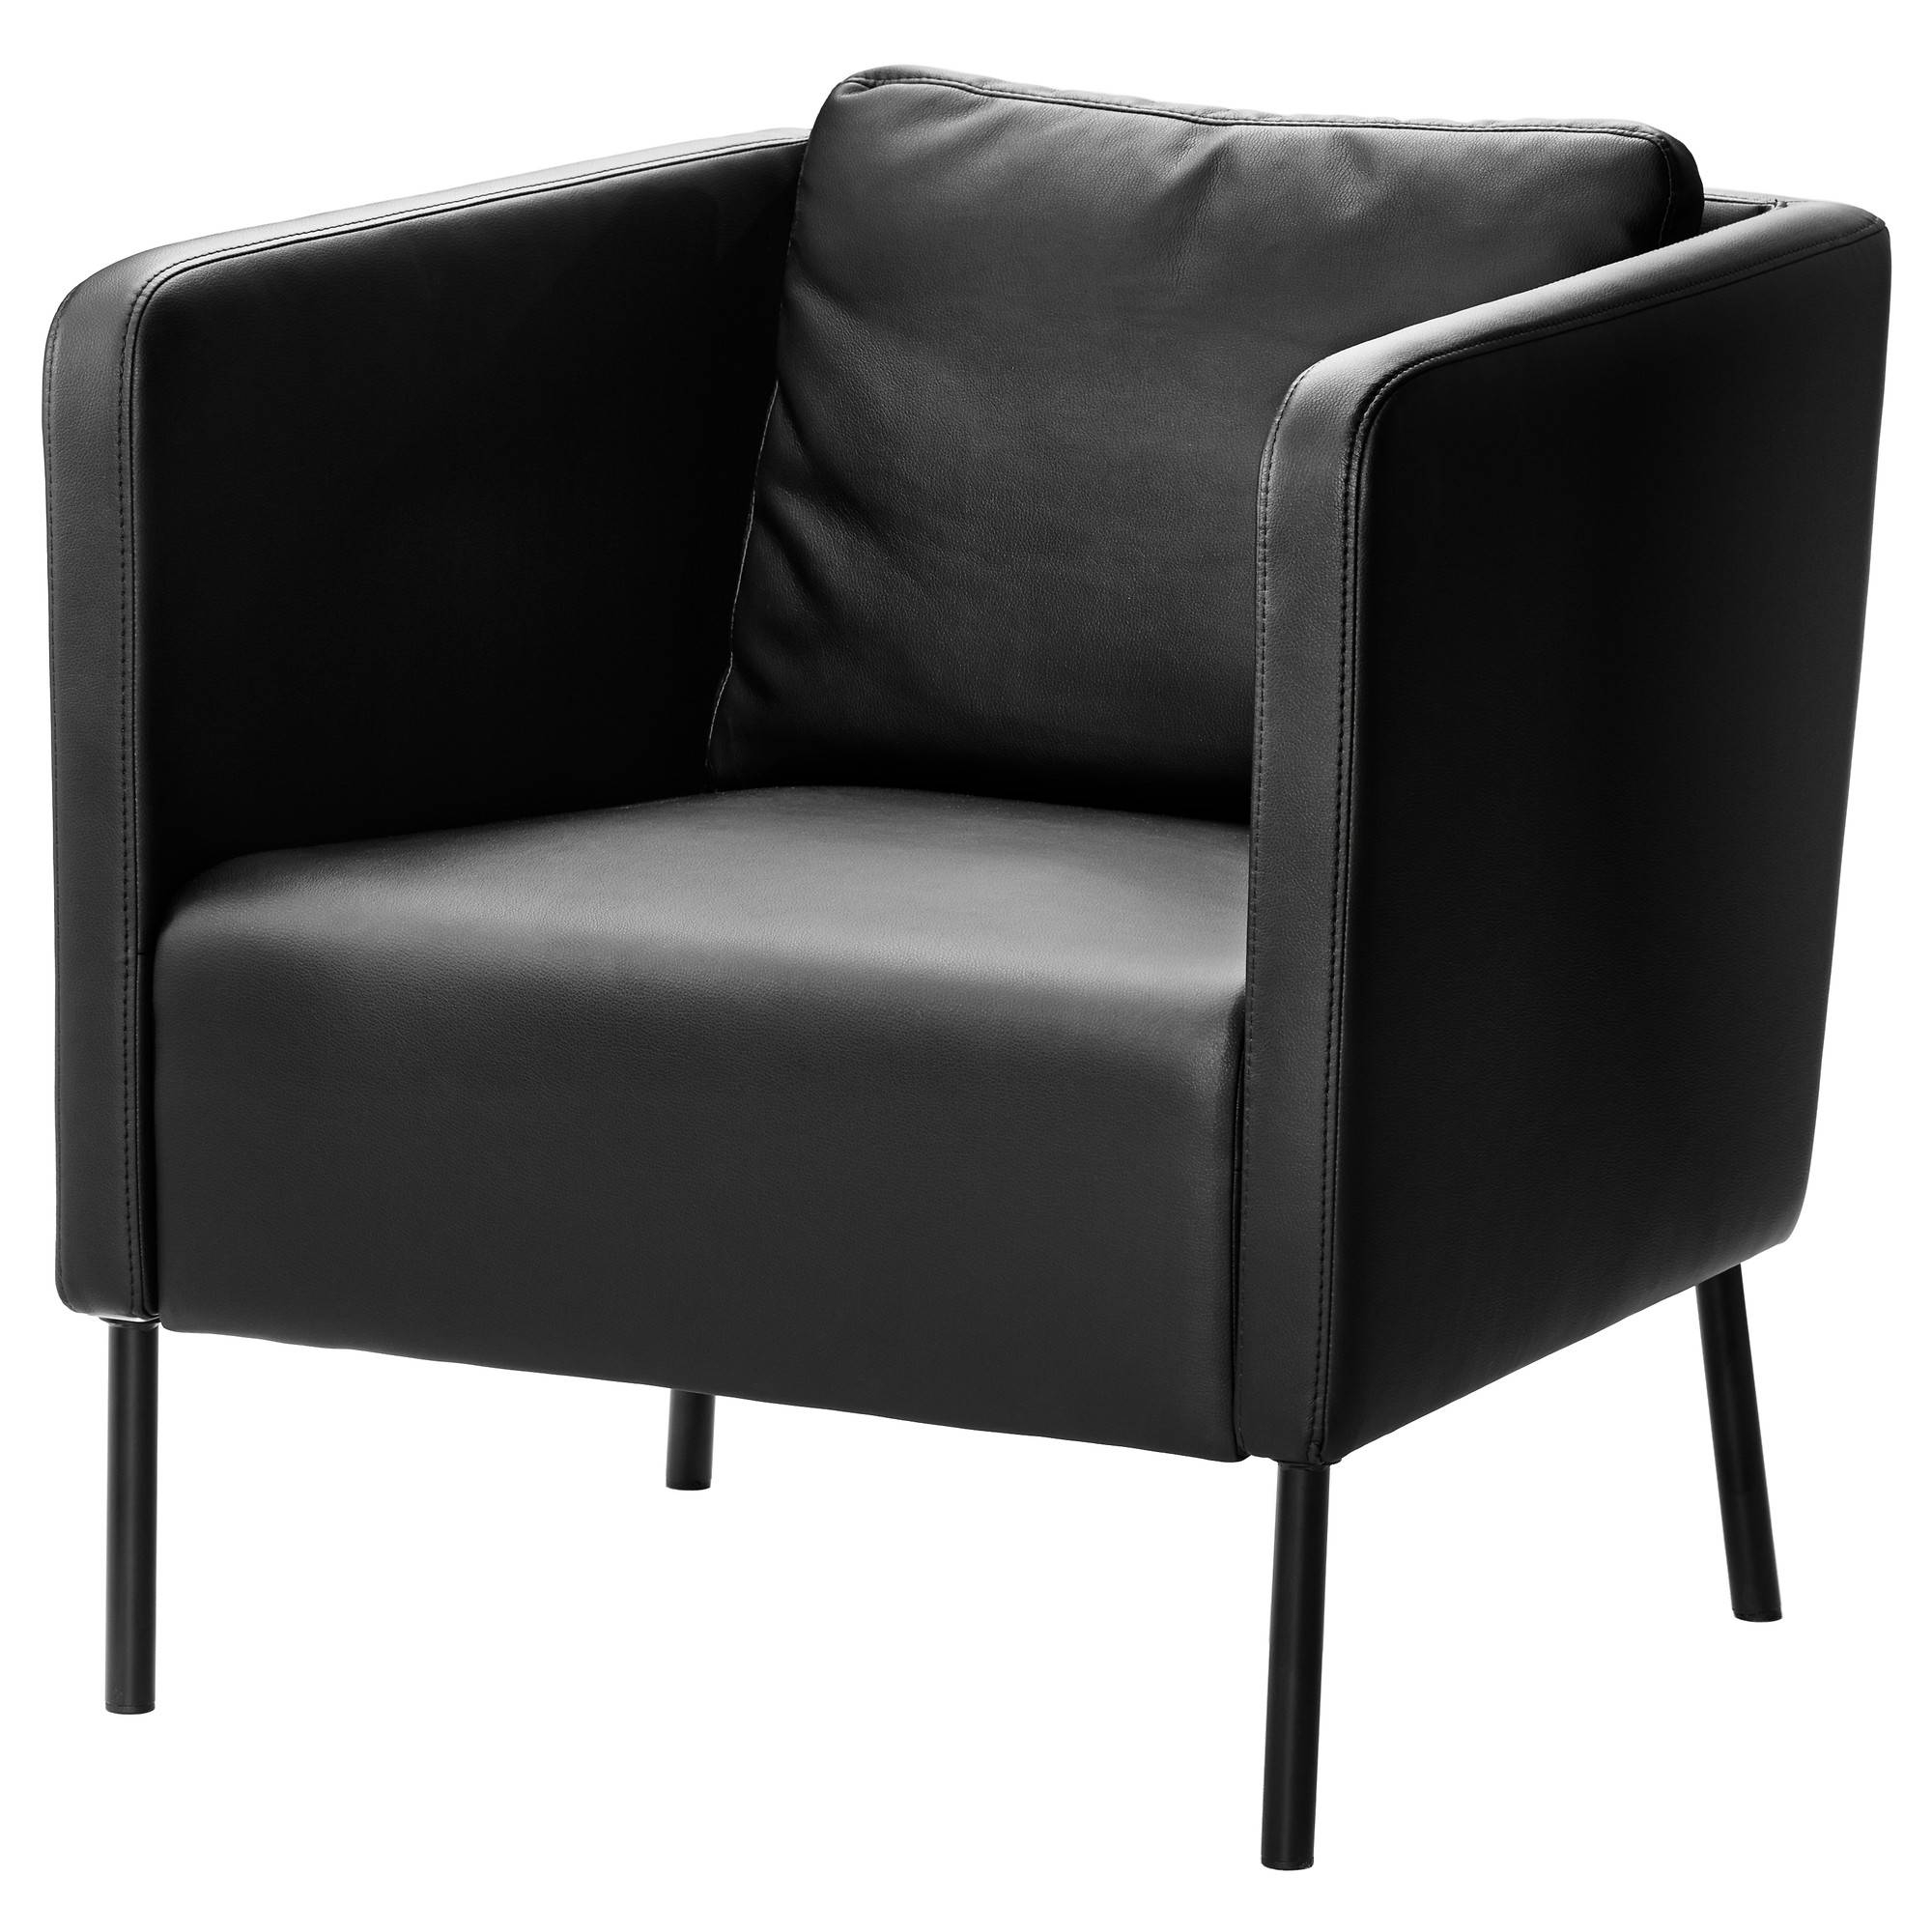 Armchairs & Recliner Chairs | Ikea regarding Narrow Armchairs (Image 3 of 30)